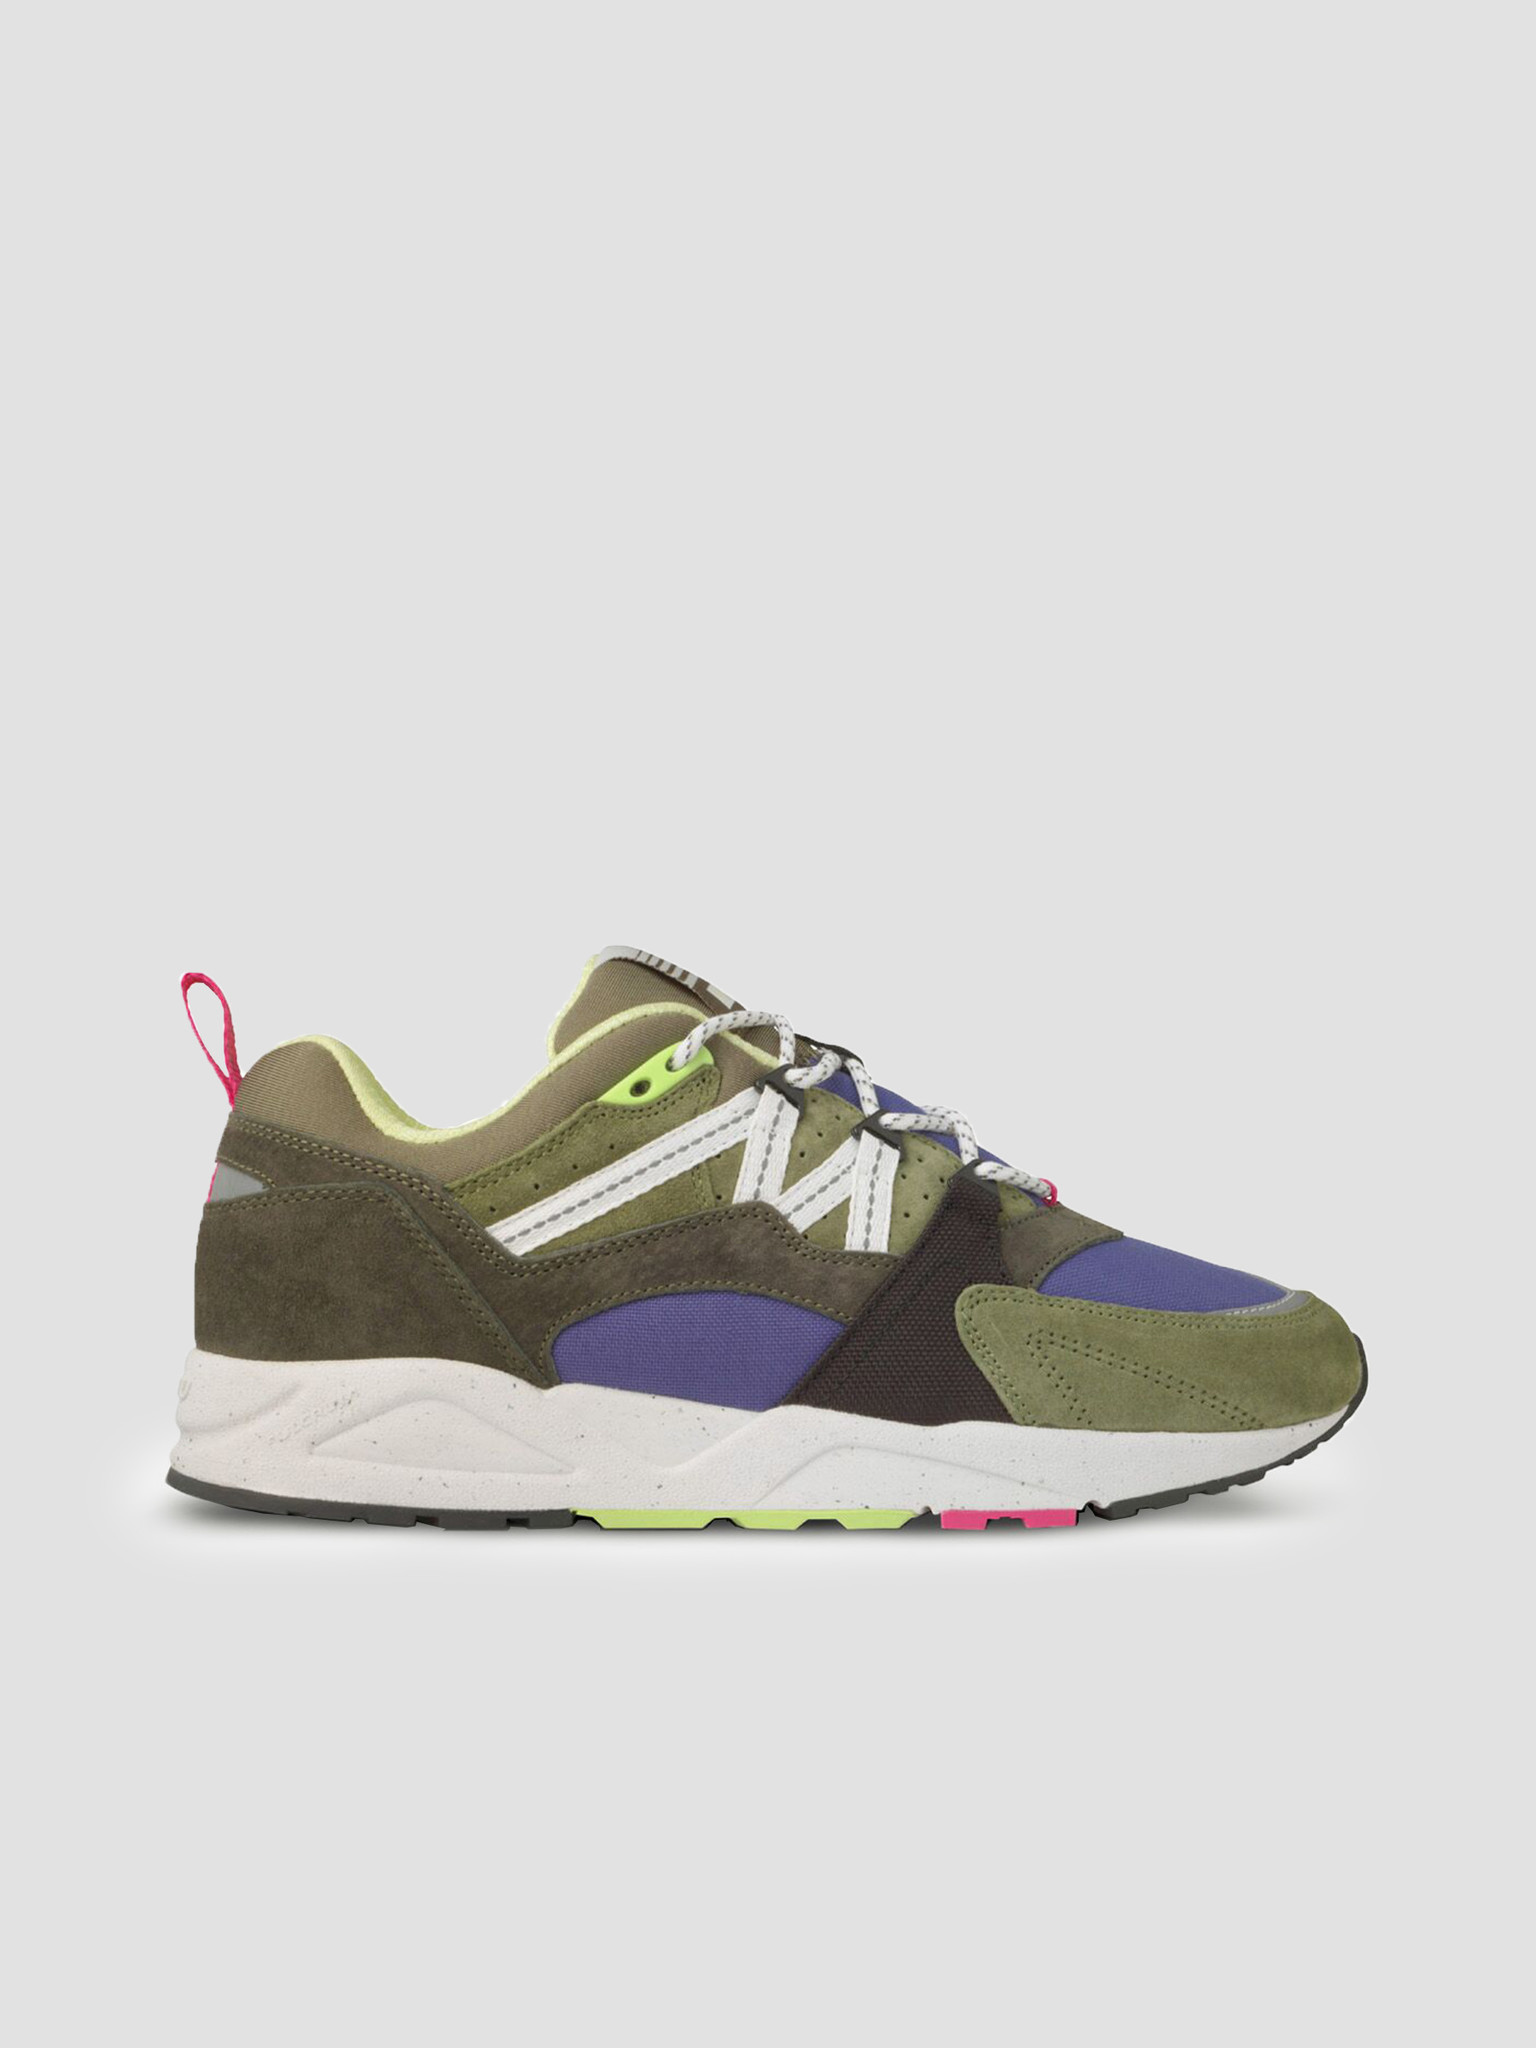 Karhu Karhu Fusion 2.0 Forest Night Bright White F804067